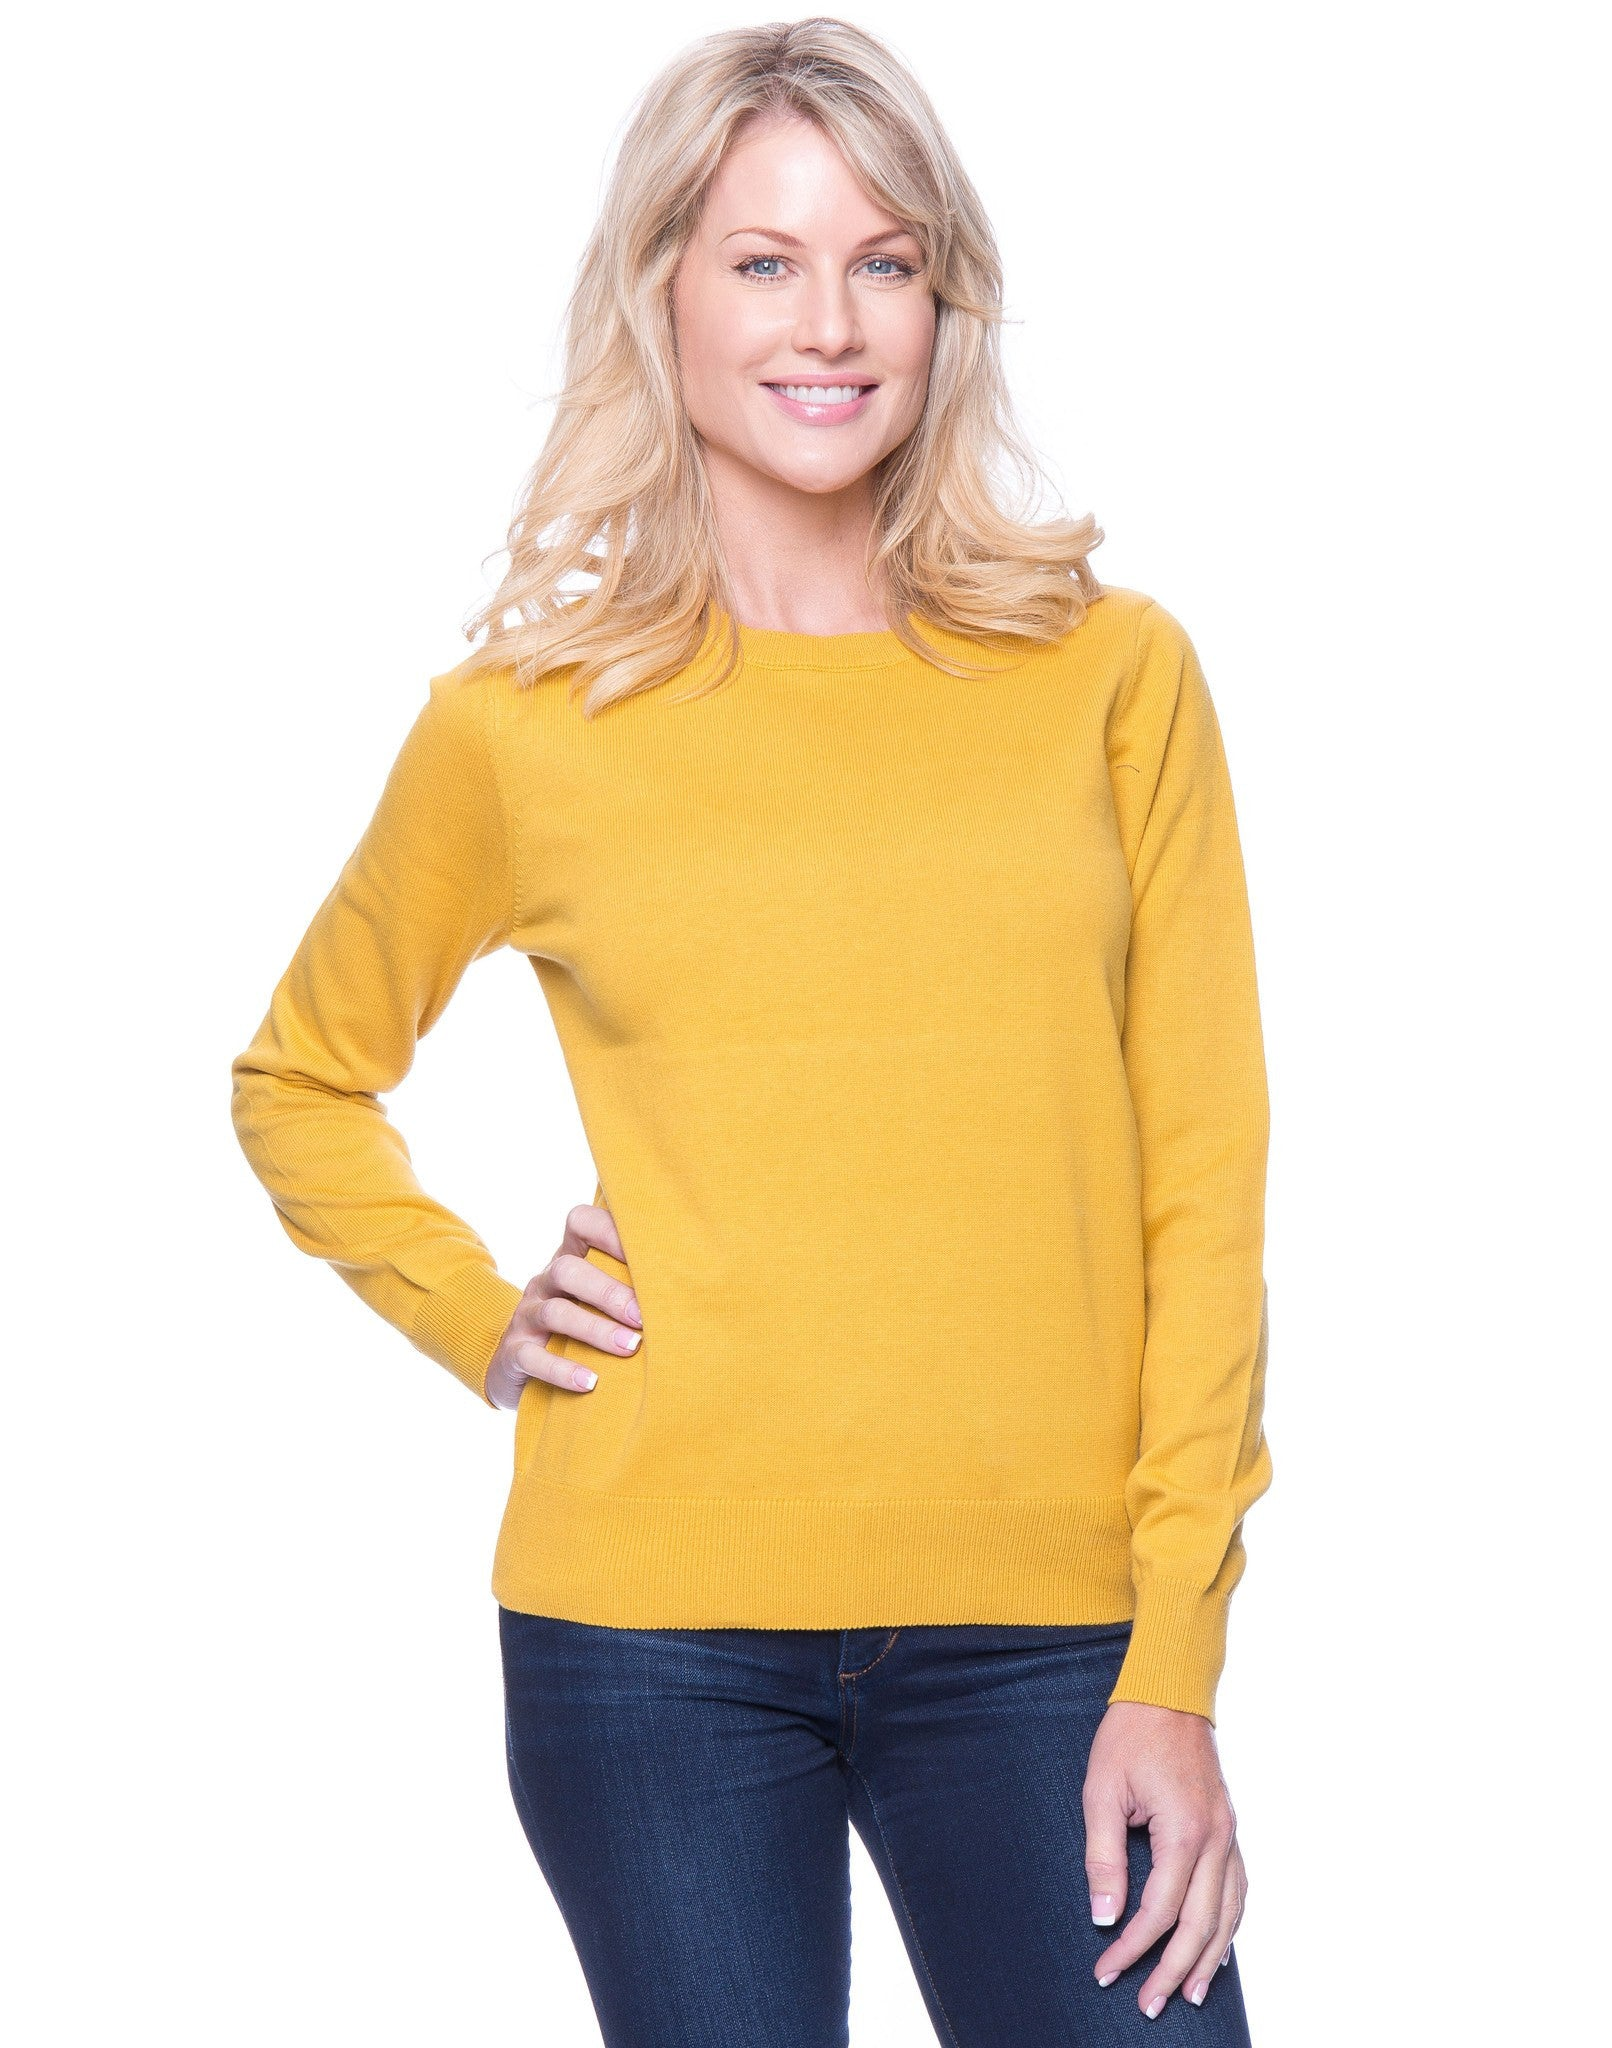 Premium Cotton Crew Neck Sweater - Mustard